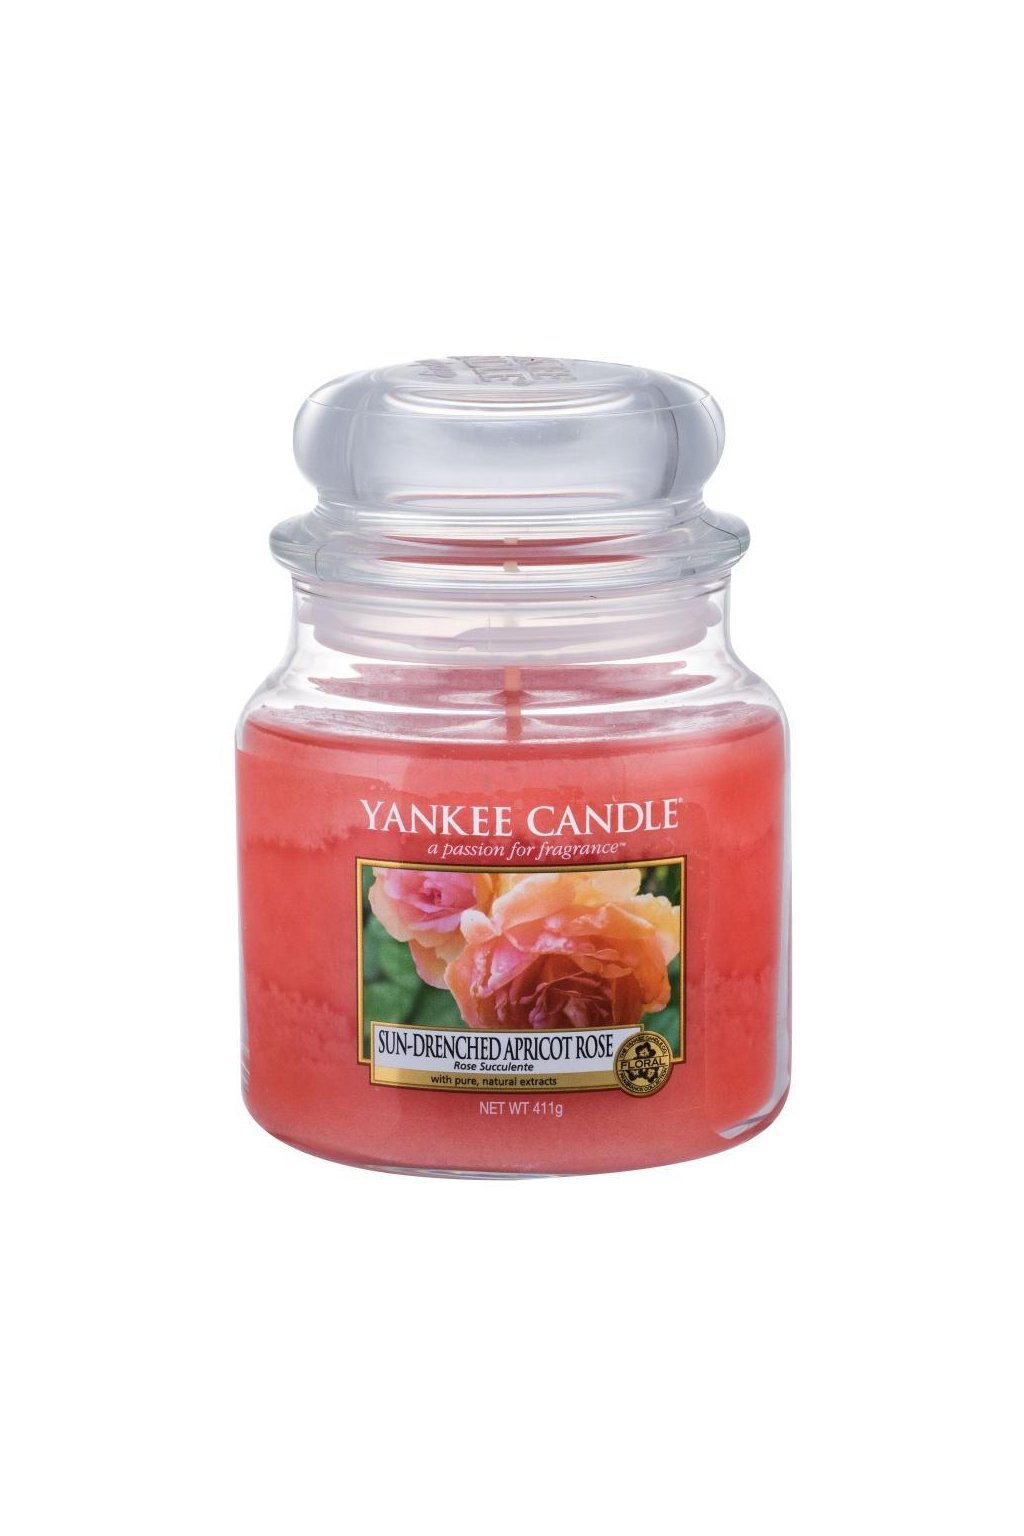 Sun Drenched Apricot Rose 411g